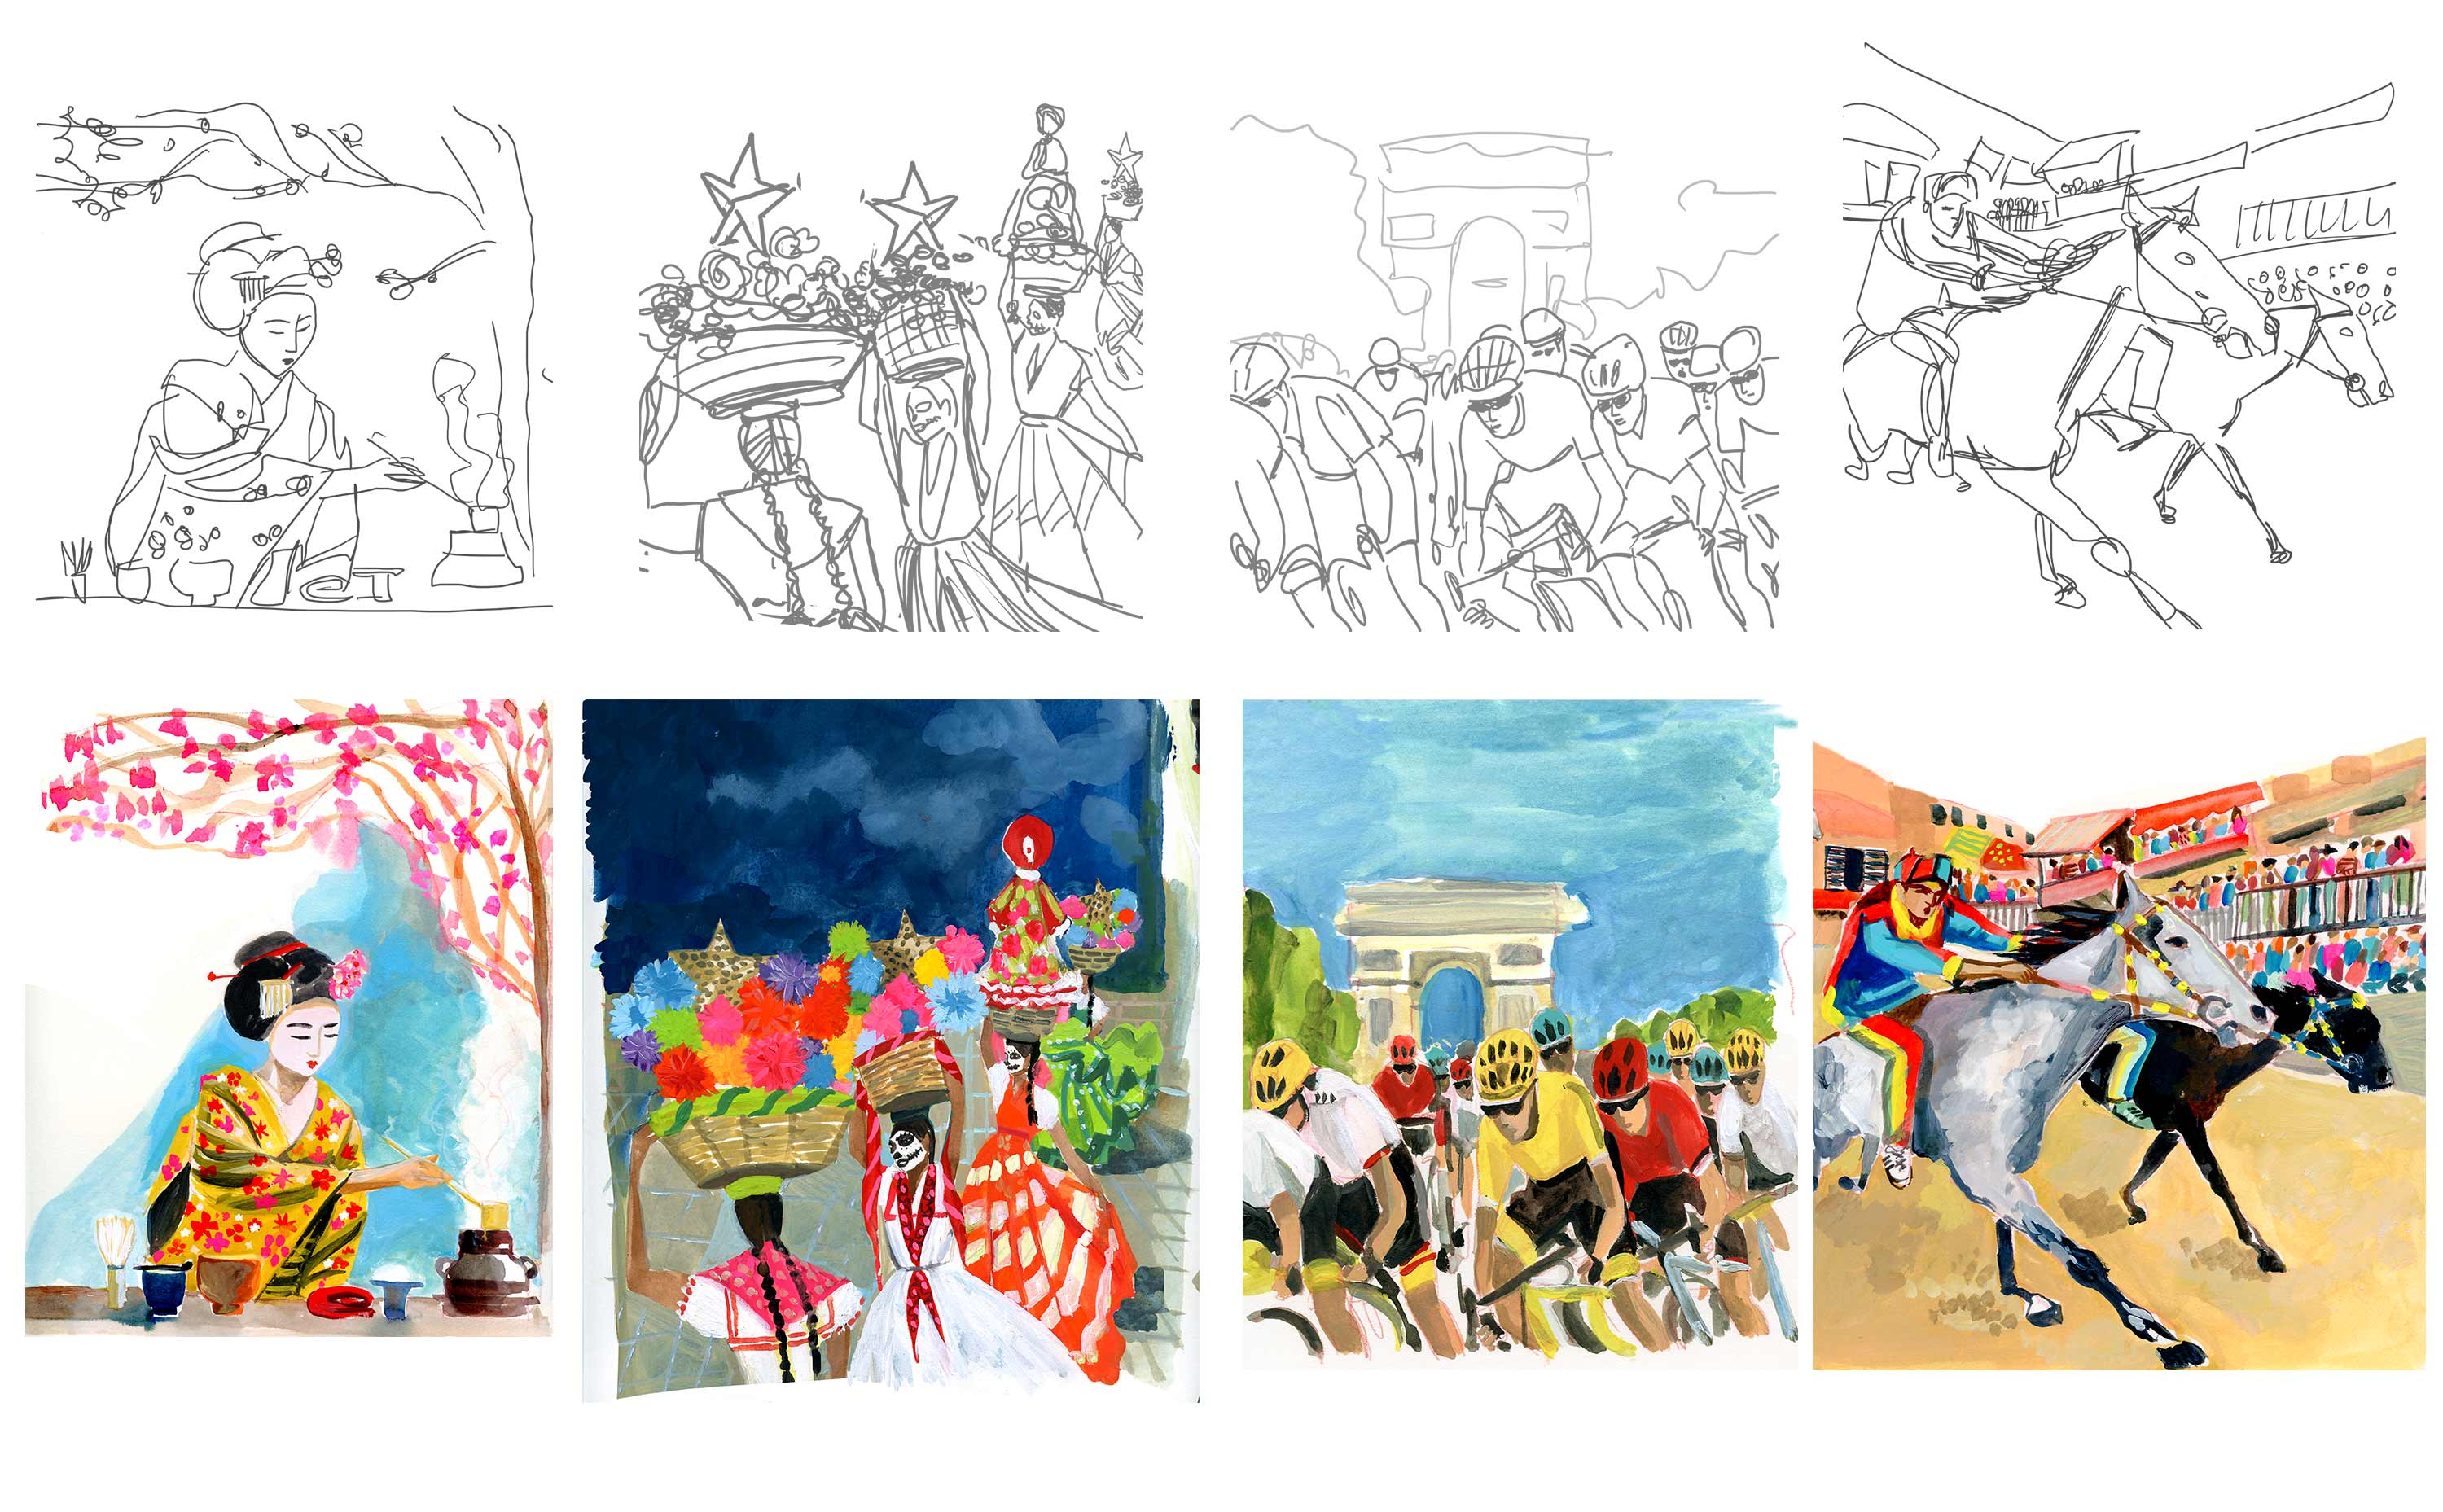 ACIS illustrator sketches and final illustrations